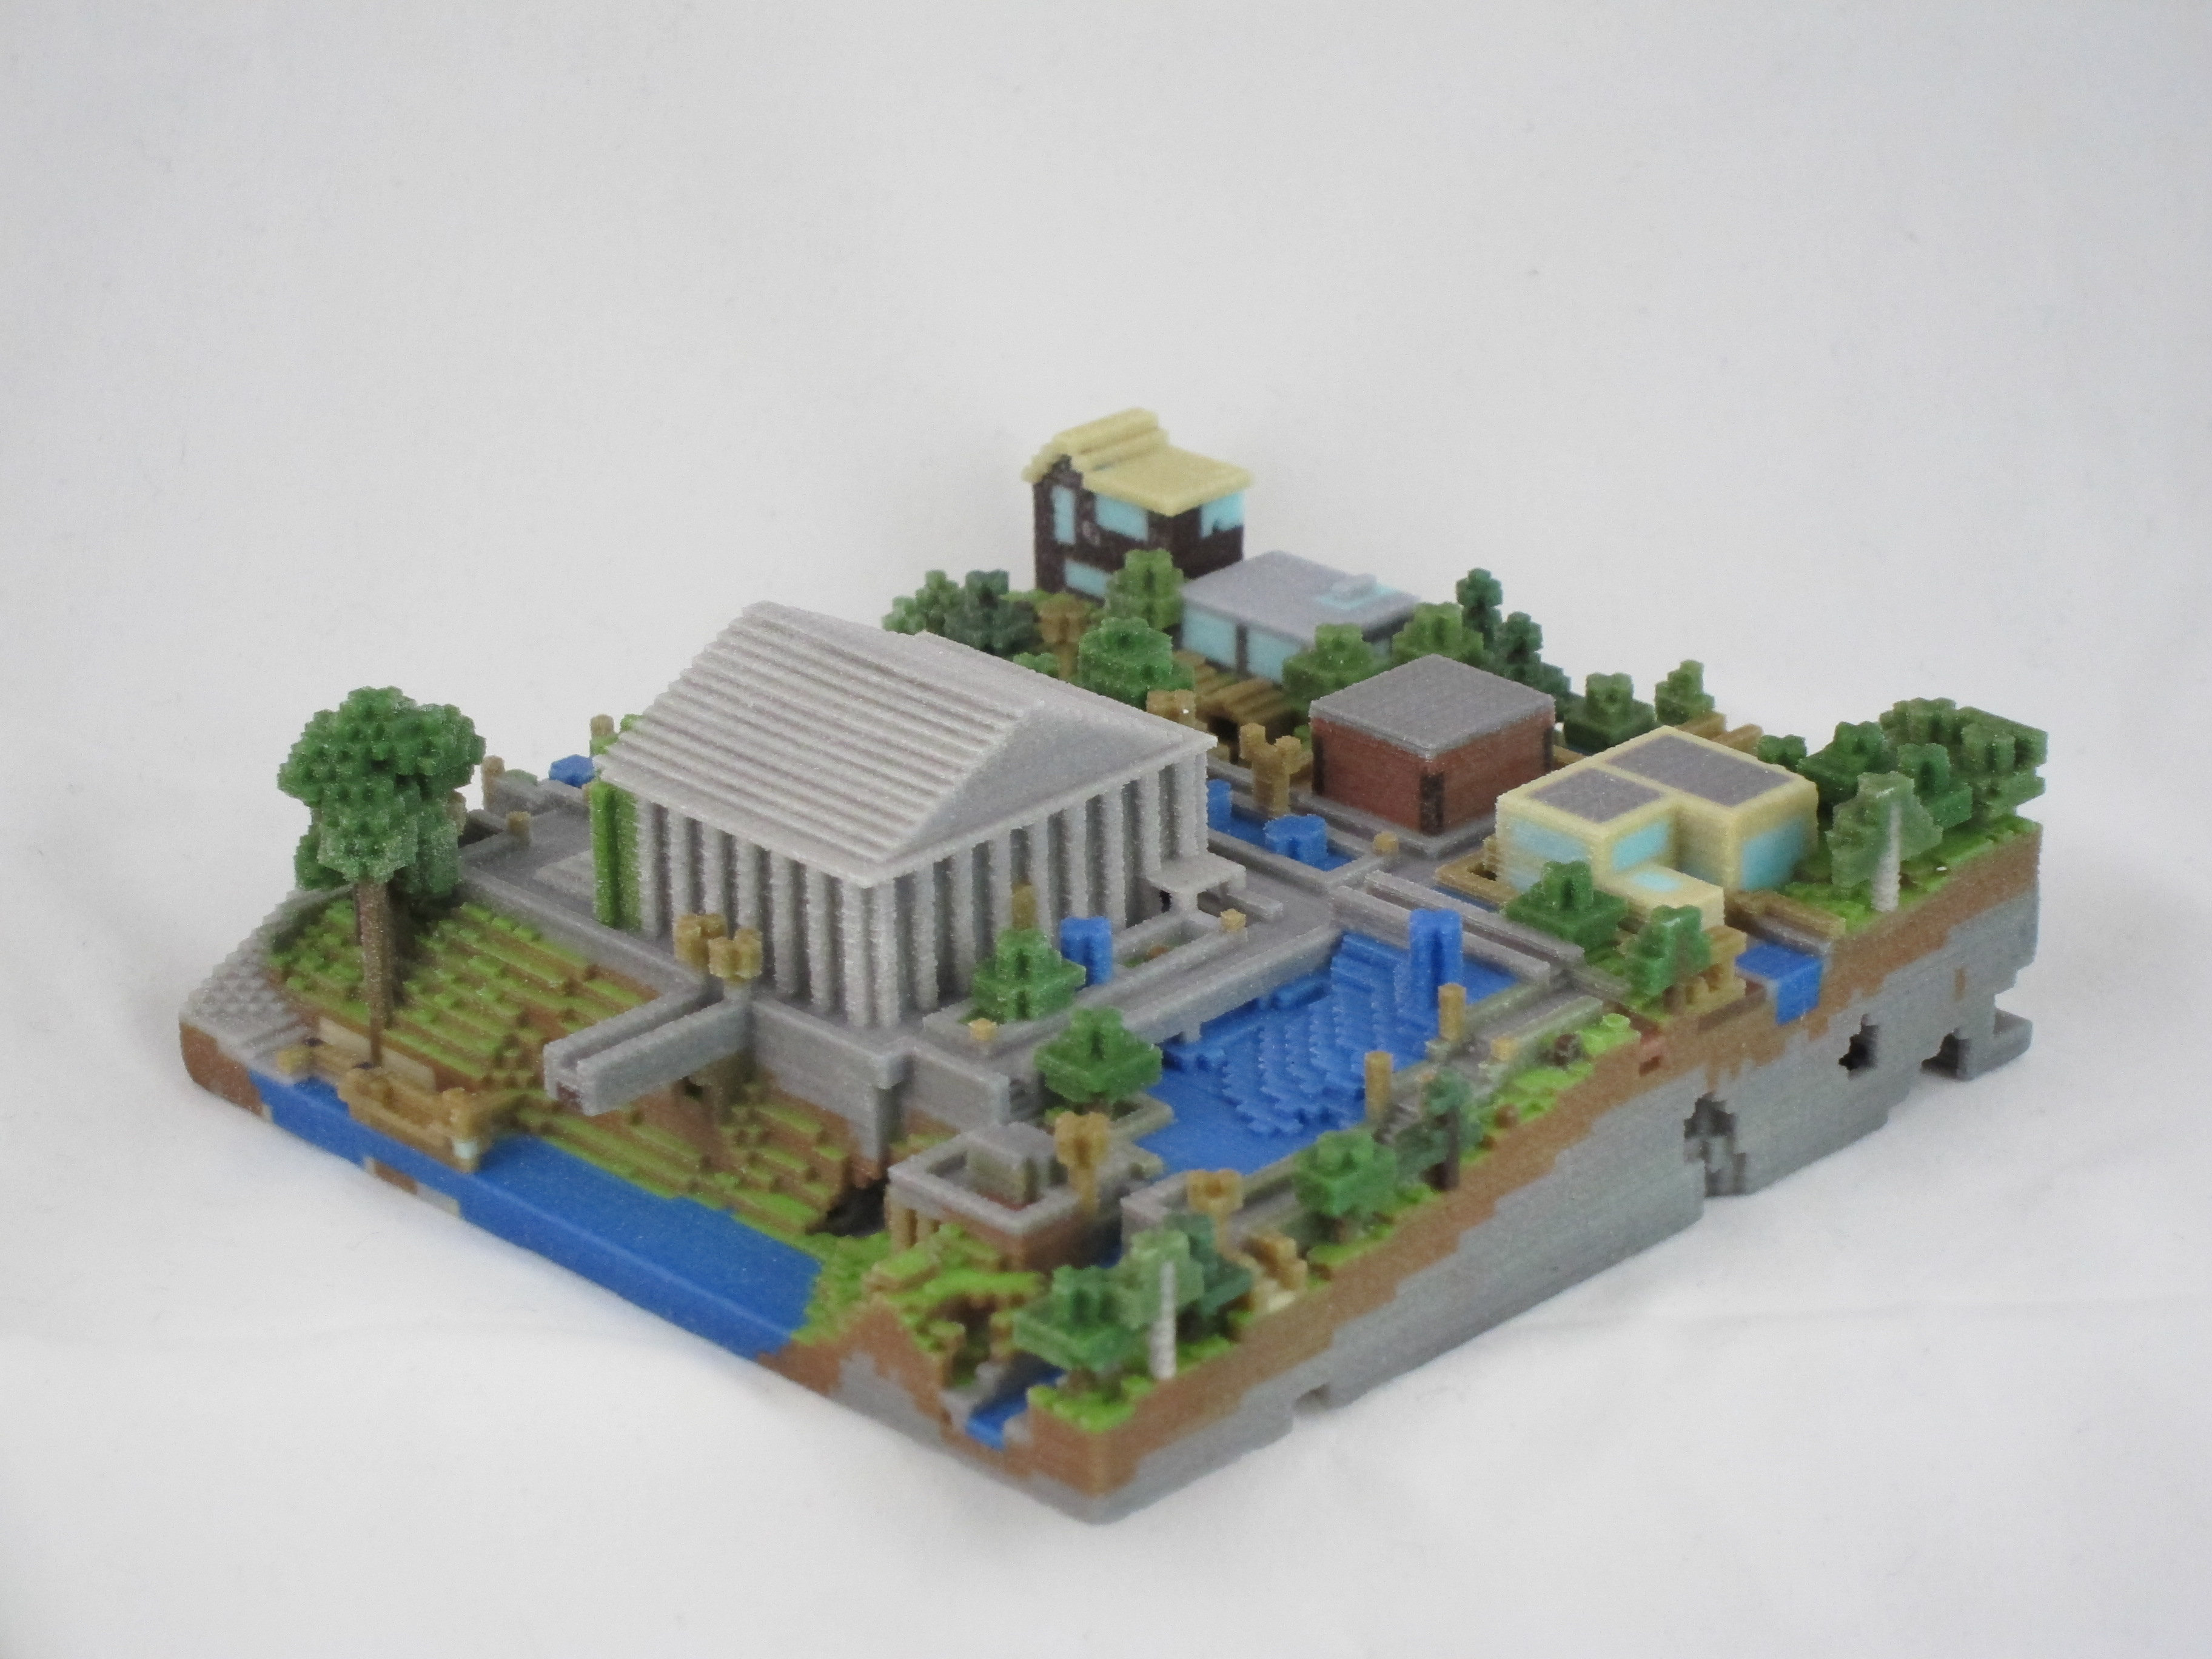 It is an image of Gutsy Minecraft Images for Printing